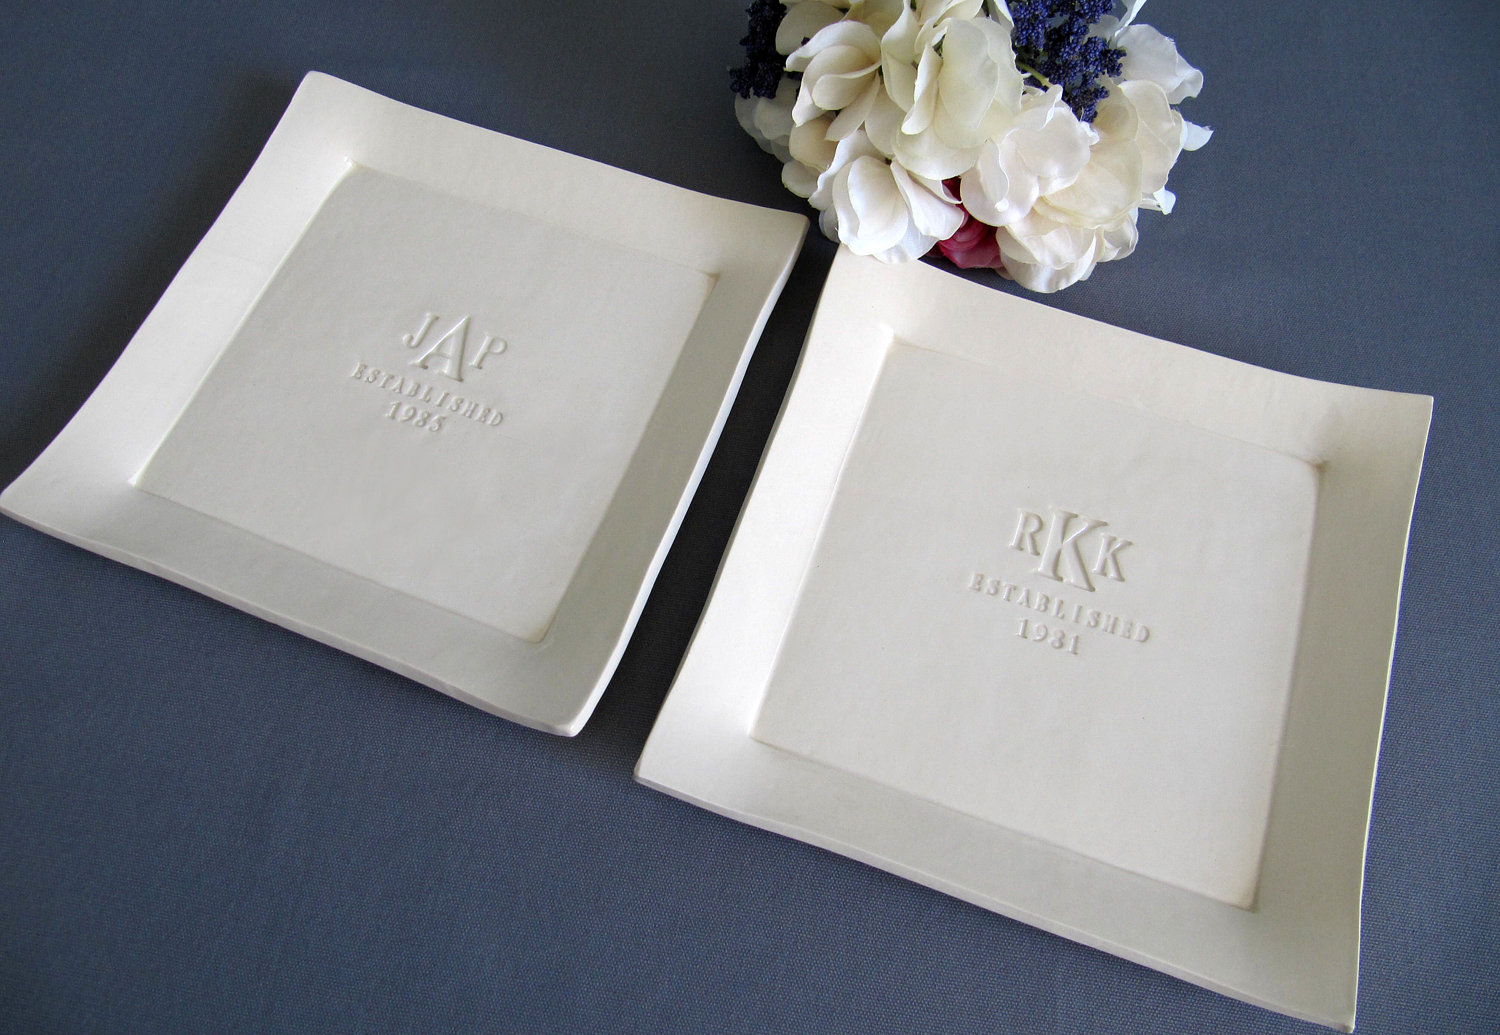 Wedding Gift Online: Set Of Personalized Platters - Parent Wedding